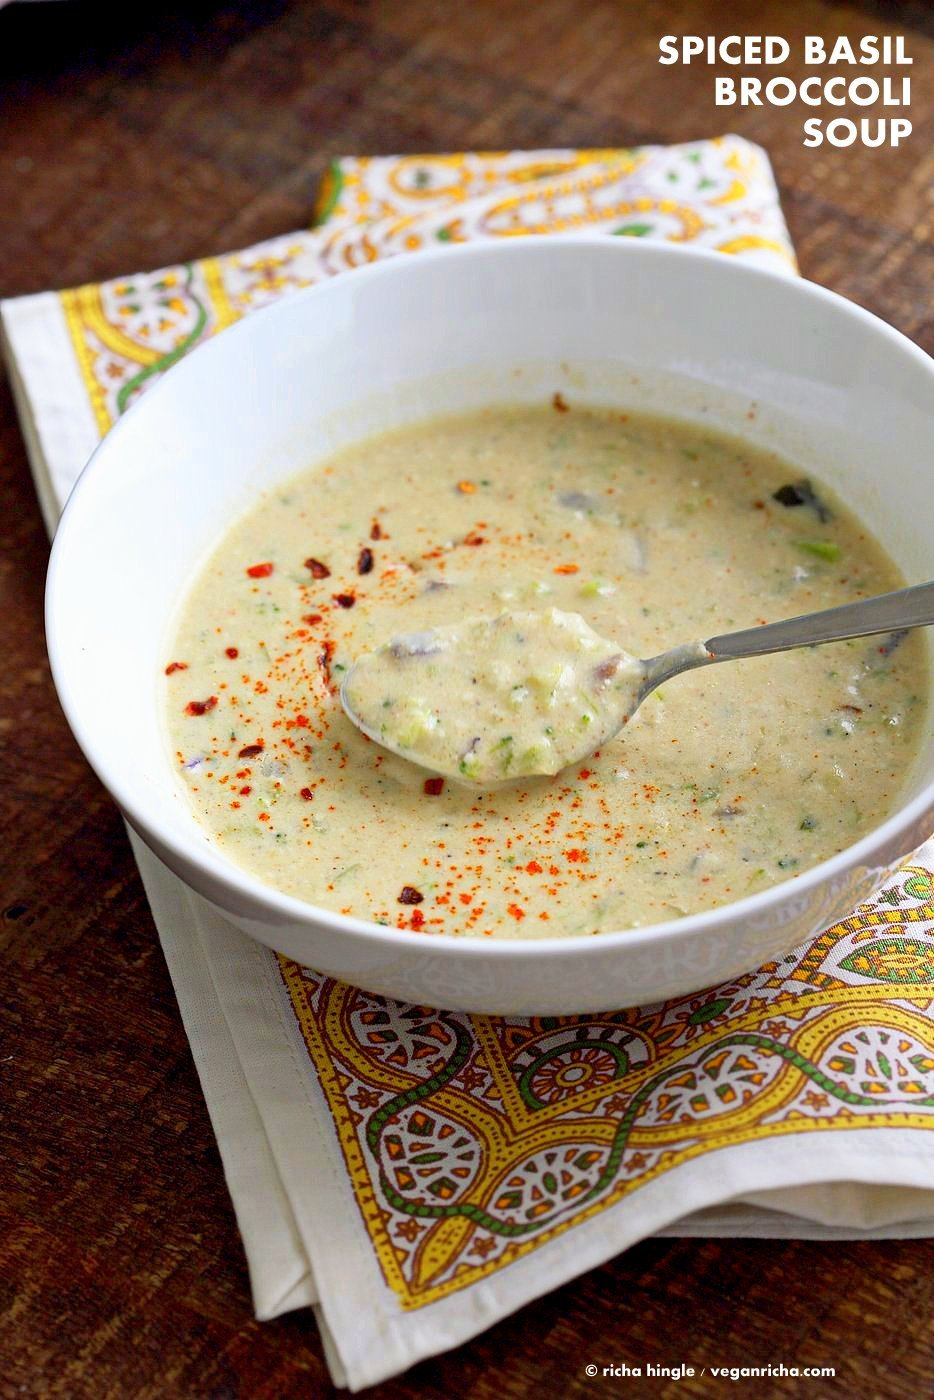 Easy Spiced Vegan Creamy Broccoli Soup. Shredded broccoli cooked with spices, basil and a creamy cashew sauce. Vegan Gluten-free Recipe. | VeganRicha.com